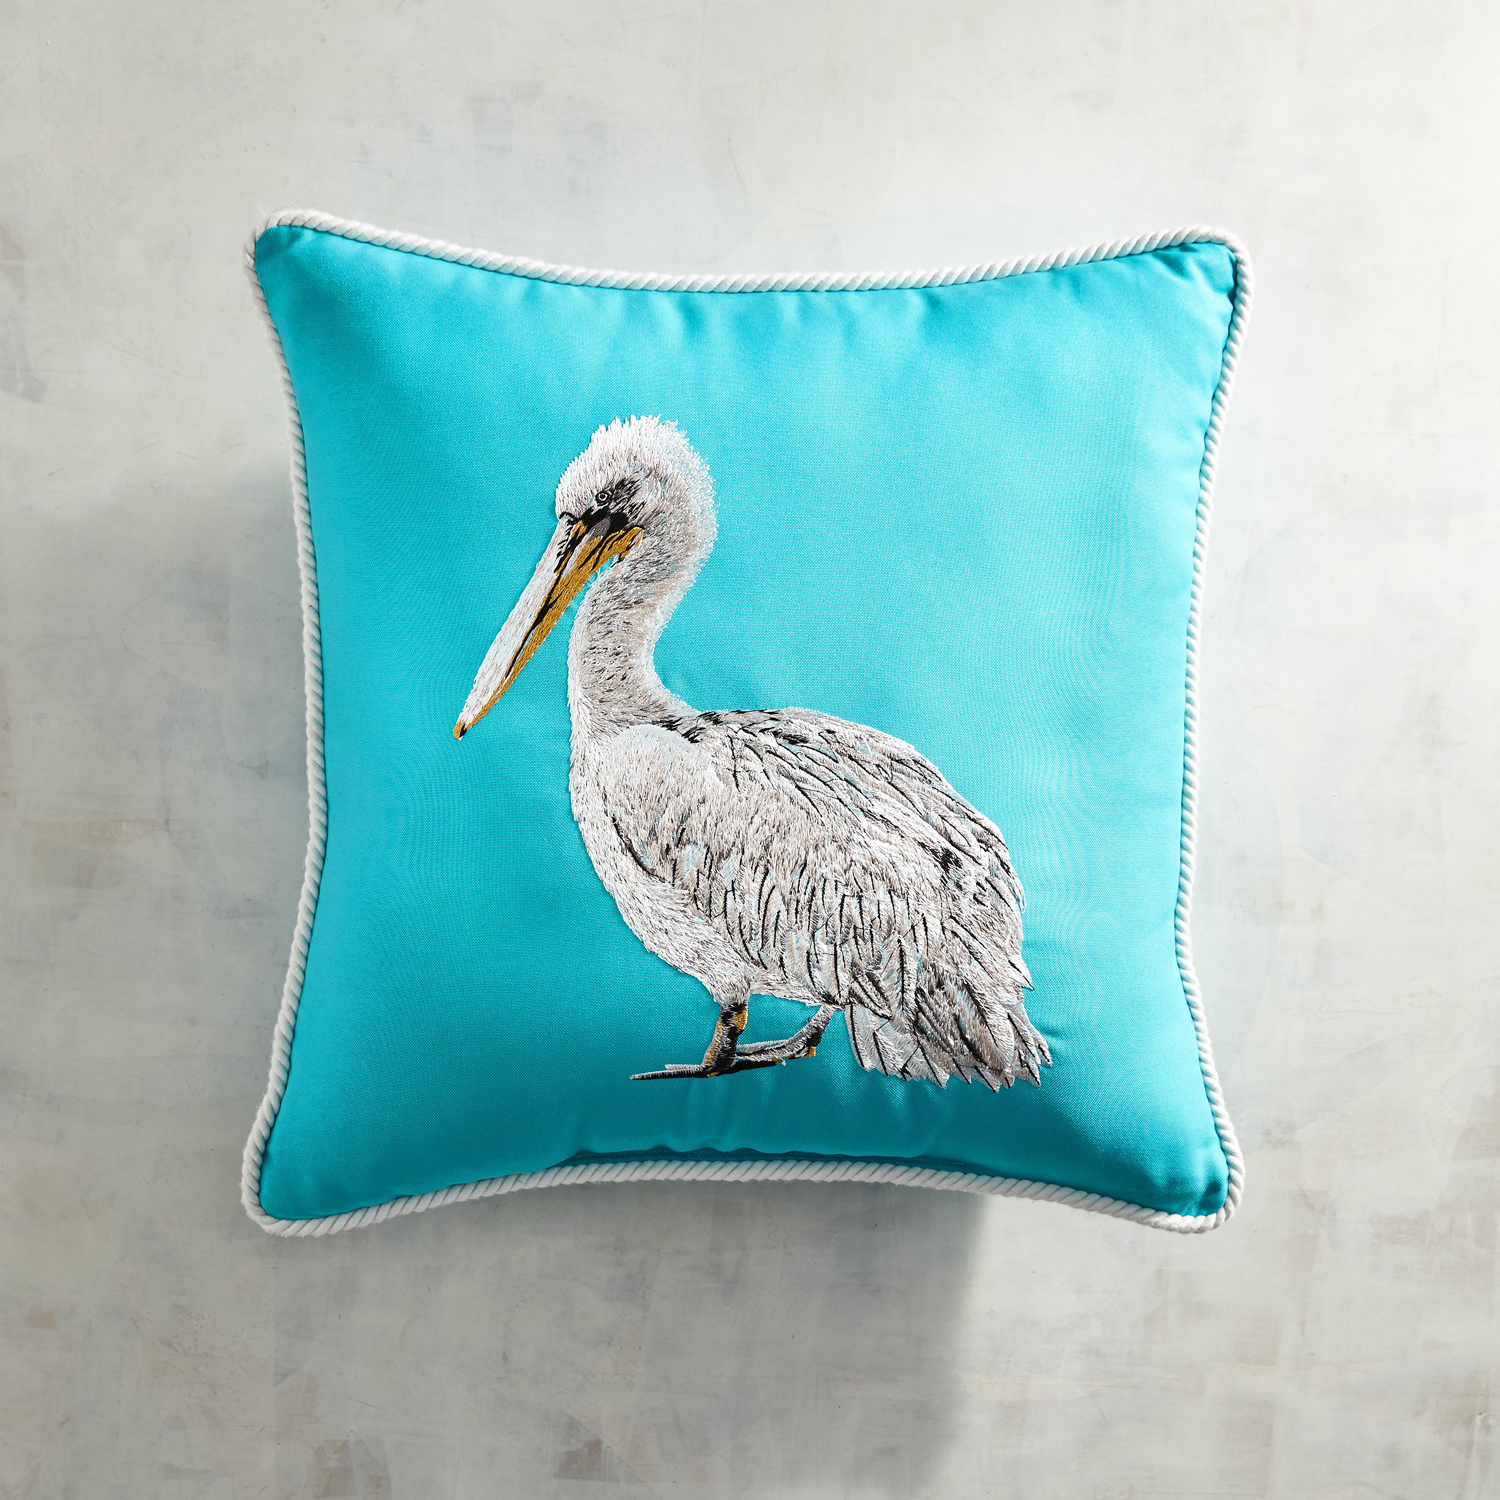 Embroidered Pelican Turquoise Pillow